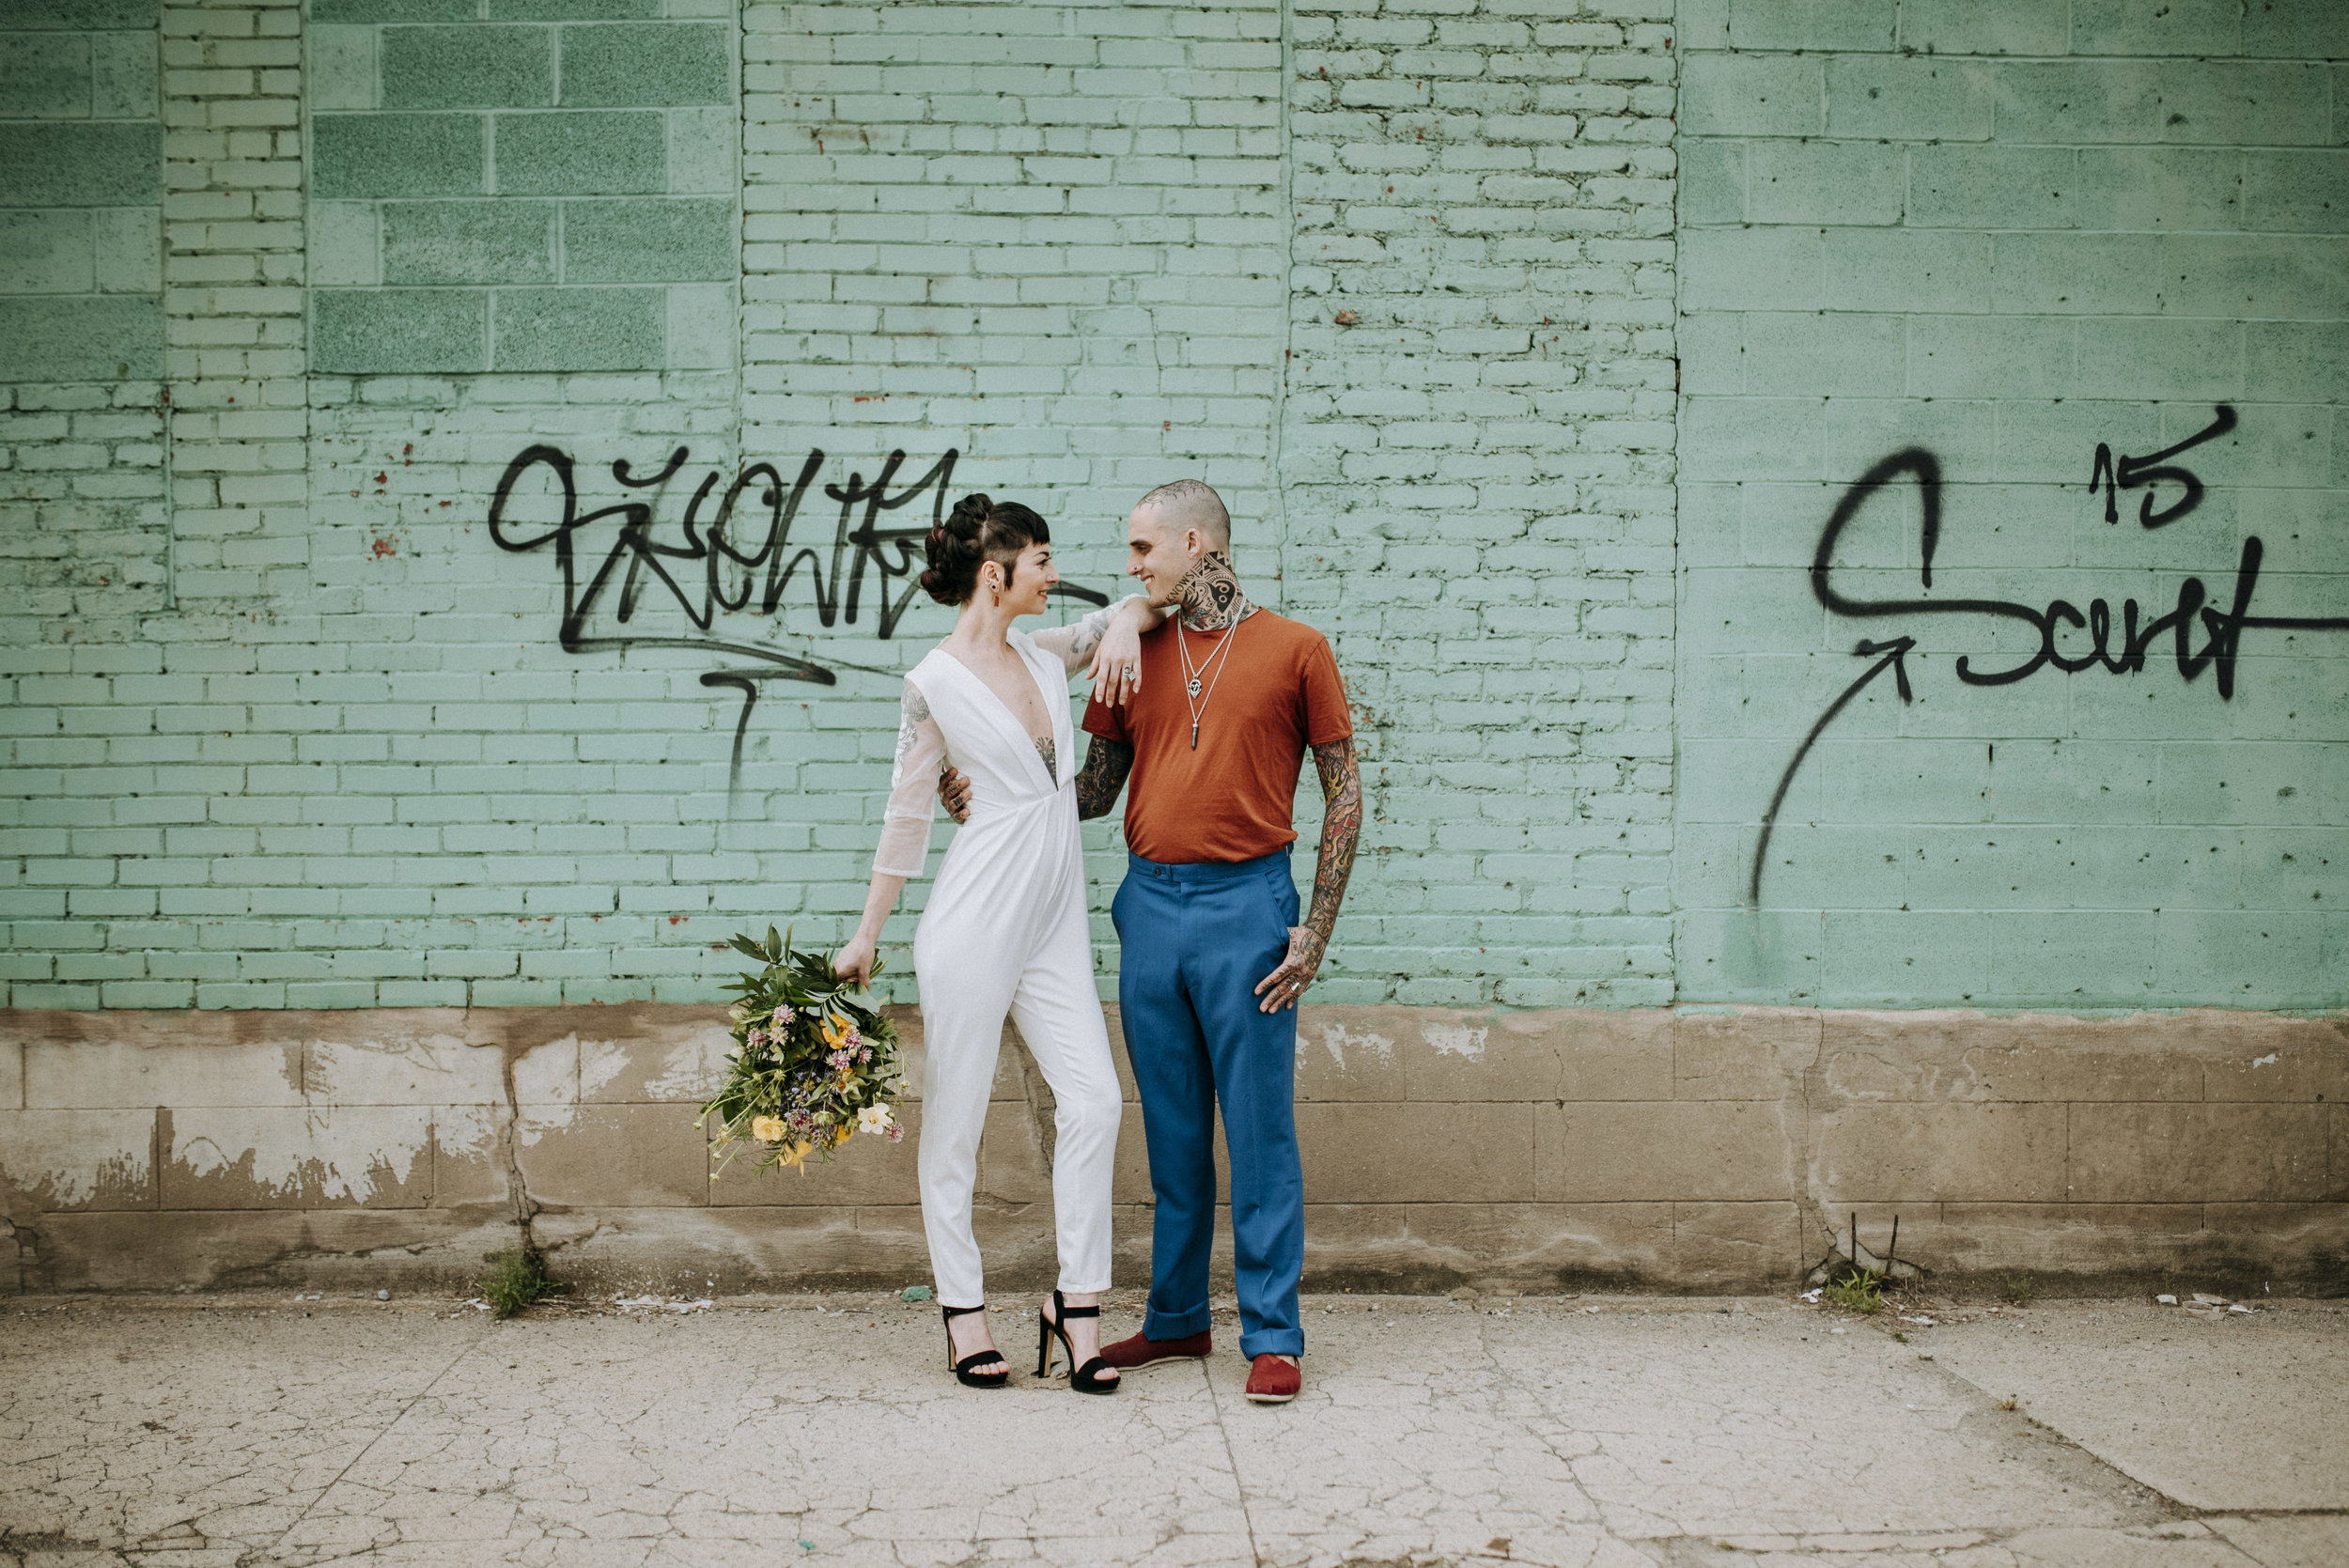 A $10 white vintage jumpsuit for the bride, shoes that she already owned, $20 thrifted pants for the groom, and the rest he already owned. $30 total | Photo by Sandrachile.